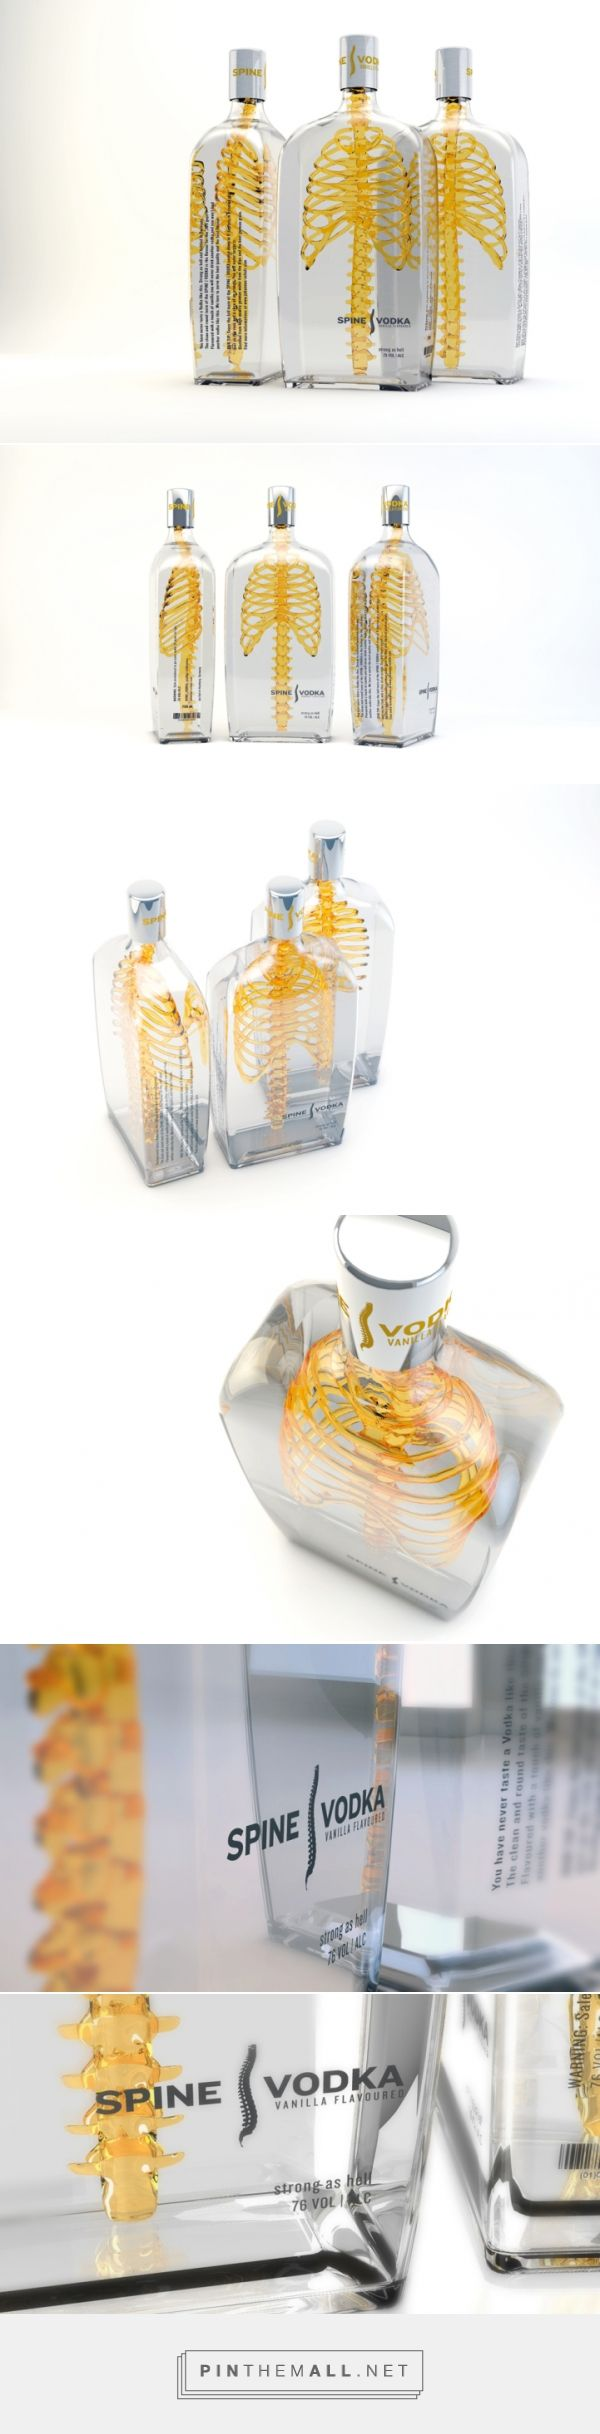 Eye-Catching Spine Design on Vodka Bottle - My Modern Met...